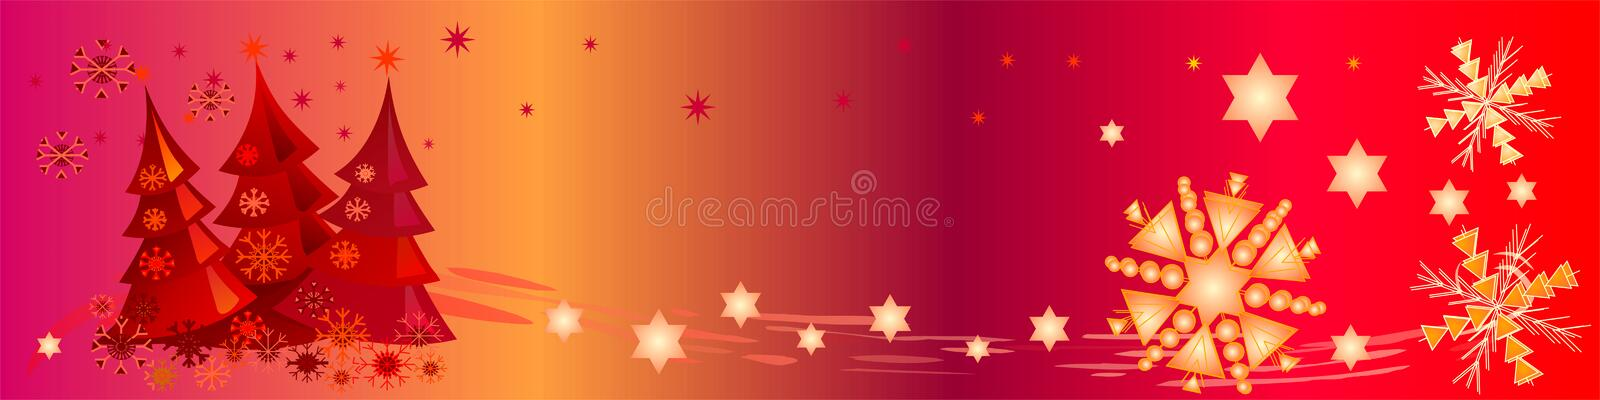 Colorful Christmas Banner. This header / banner shows decorative snowflakes, stars and cute little Christmas trees. Can be used as a background too royalty free illustration